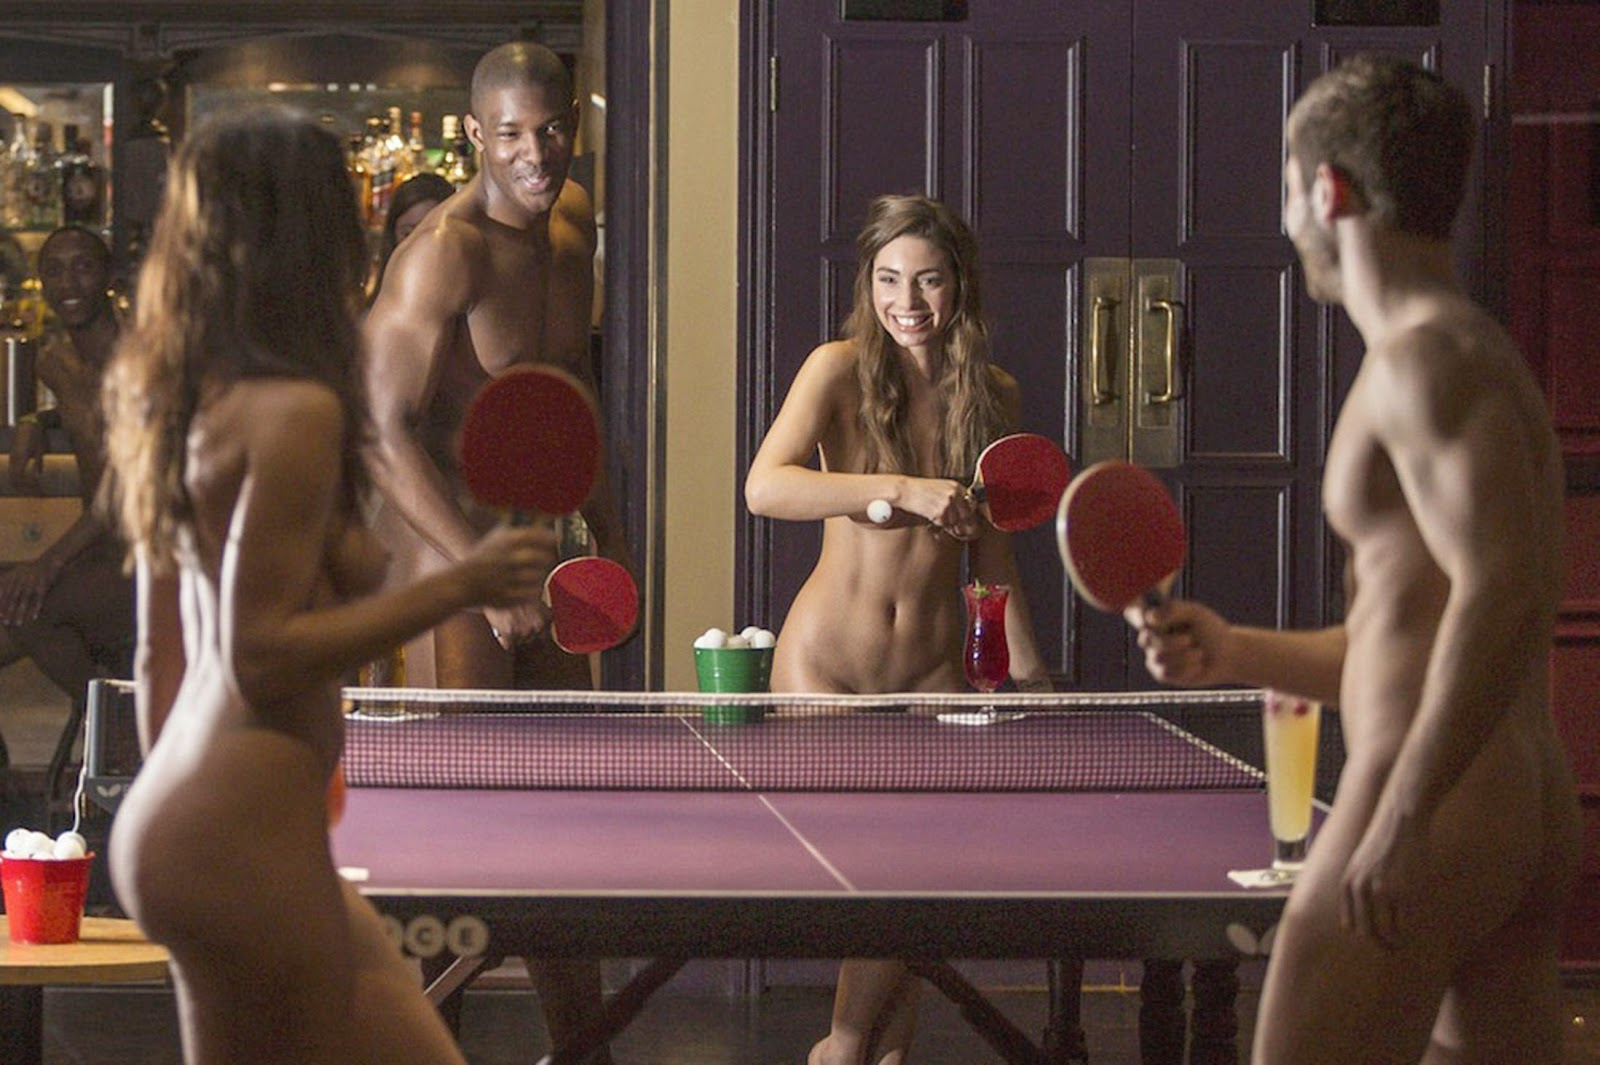 Exclusive: World's First N'aked Table Tennis Tournament Held In London